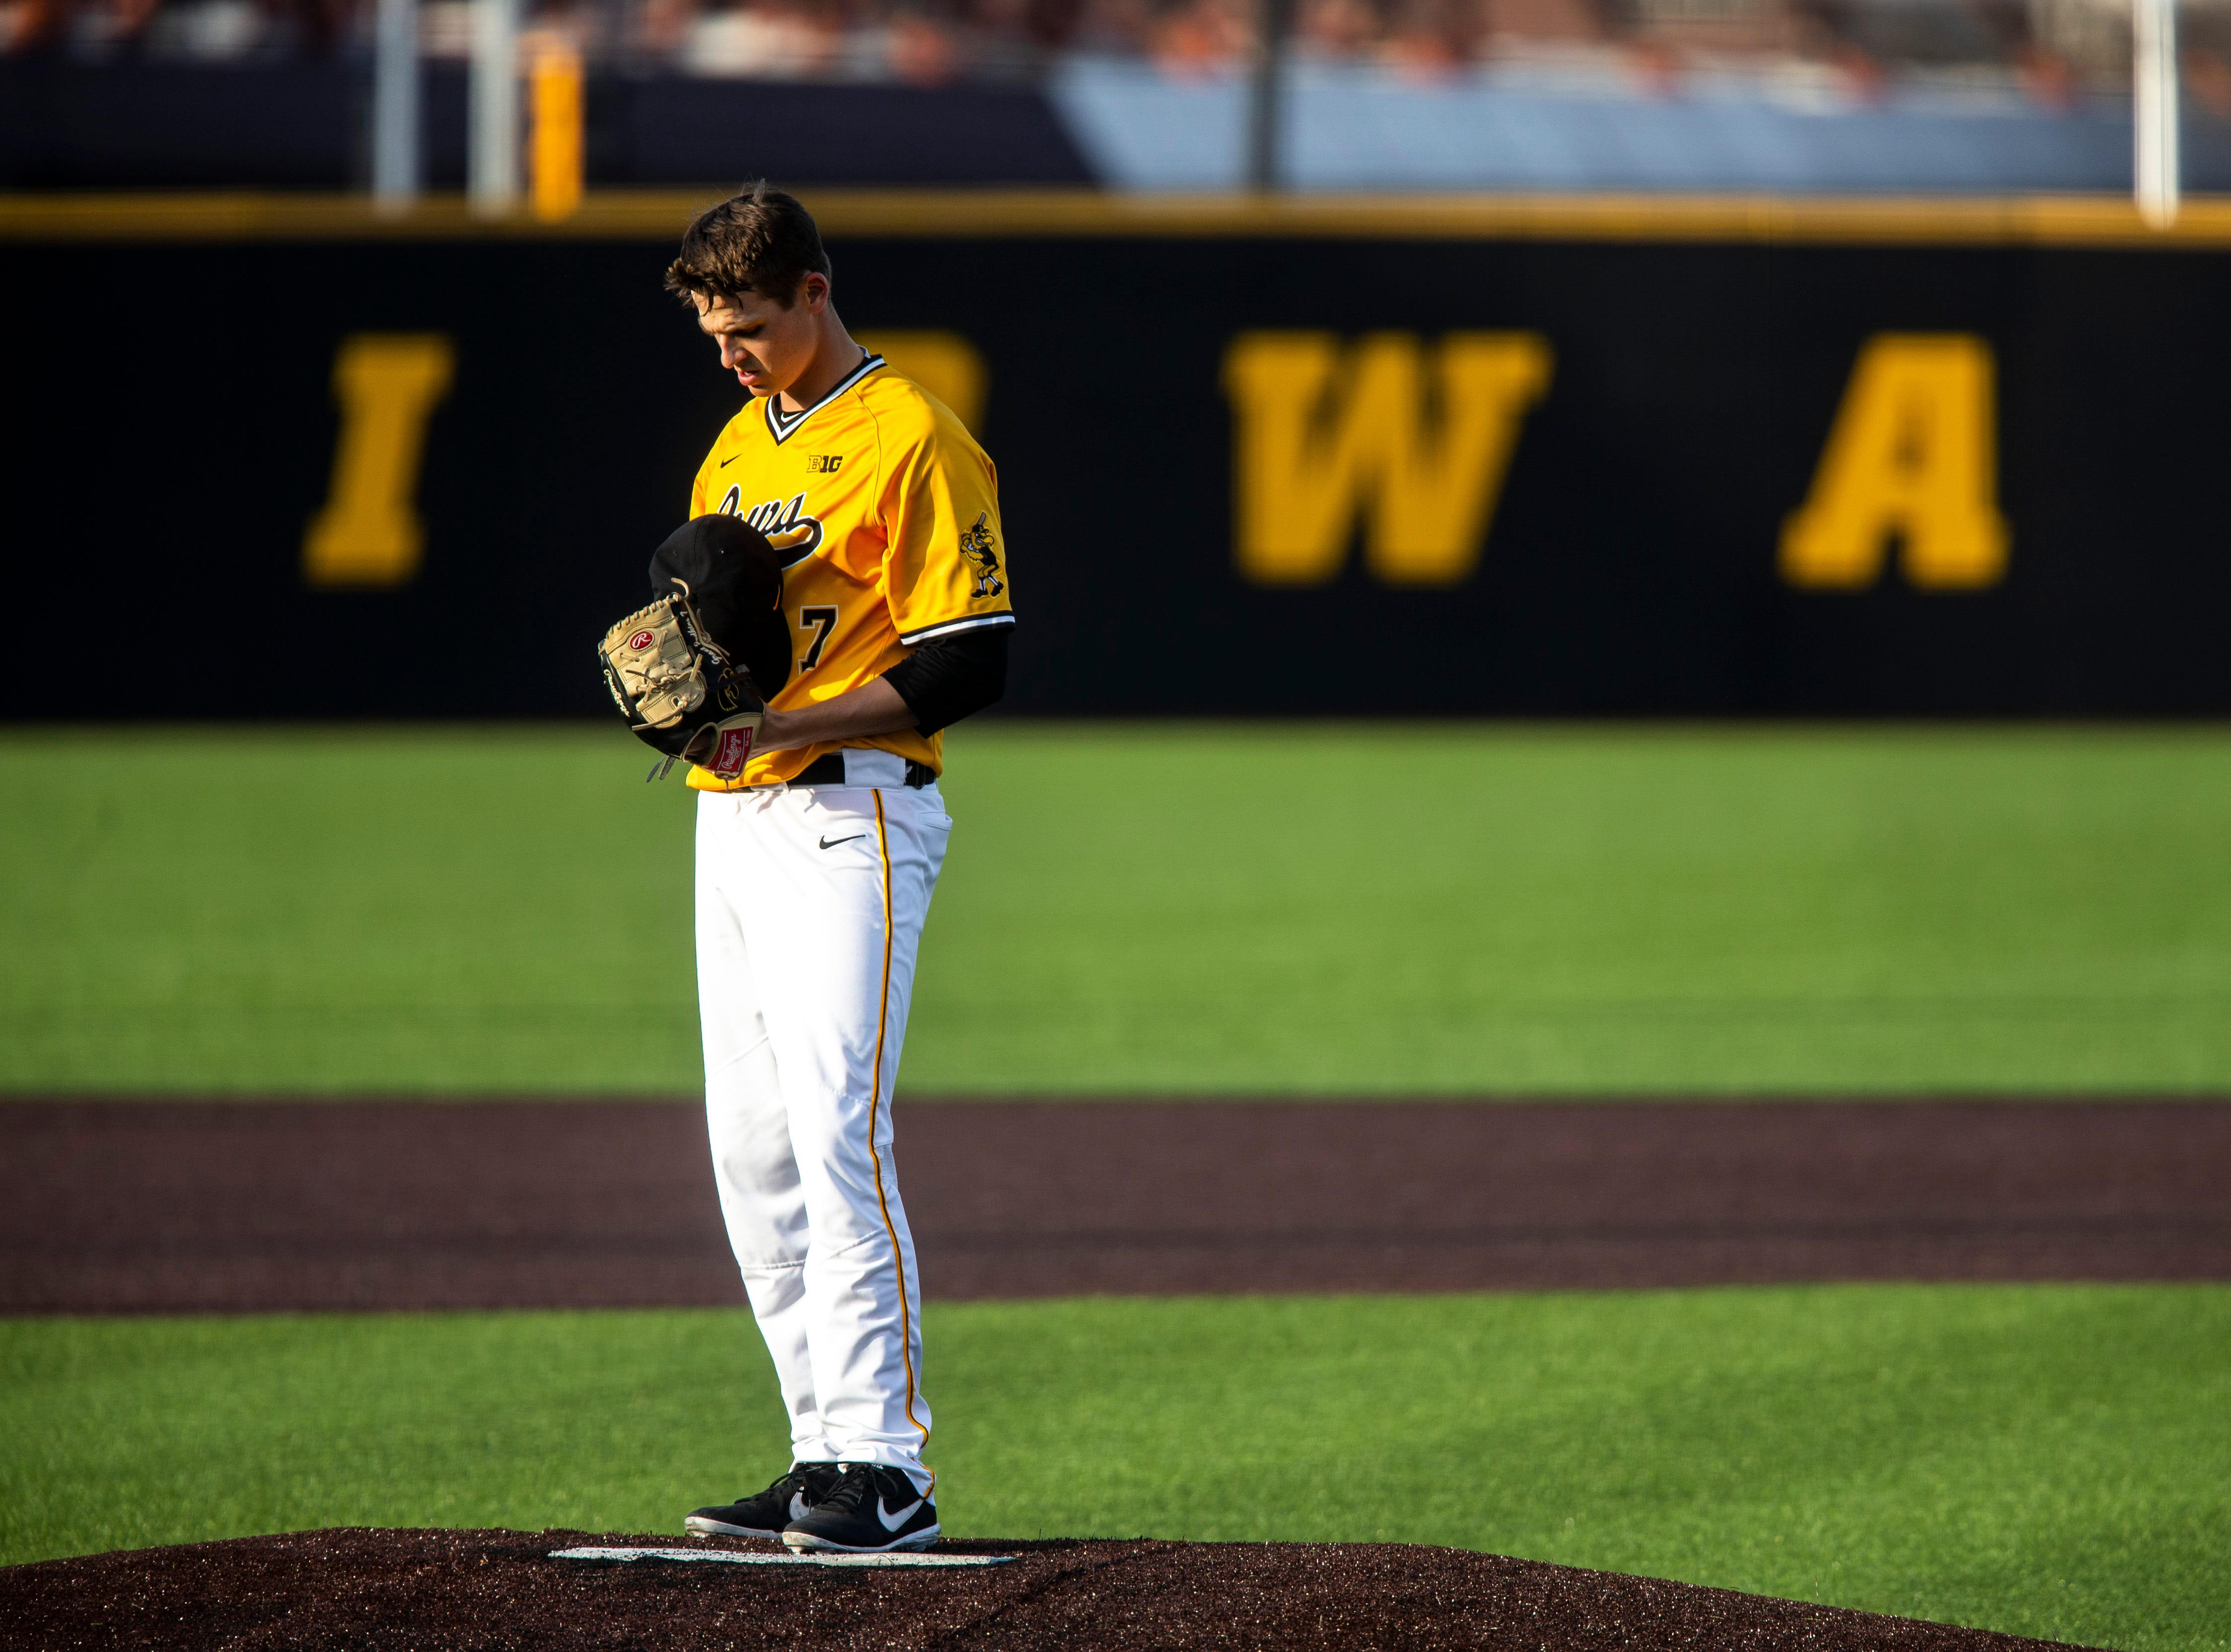 Iowa pitcher Grant Judkins (7) takes a moment on the mound between batters during a NCAA Big Ten Conference baseball game on Saturday, April 6, 2019, at Duane Banks Field in Iowa City, Iowa.